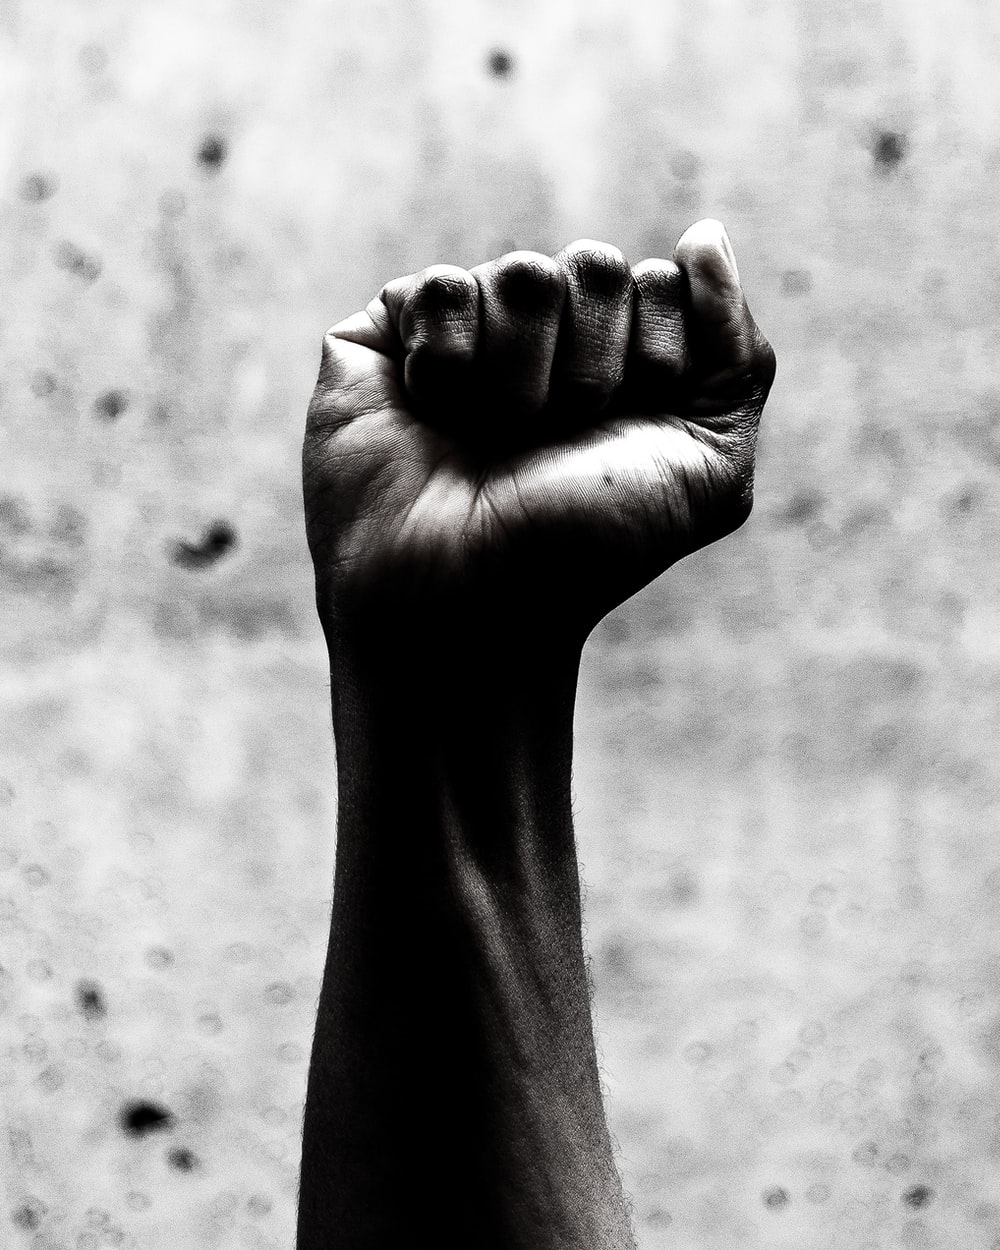 person's right fist grayscale photography